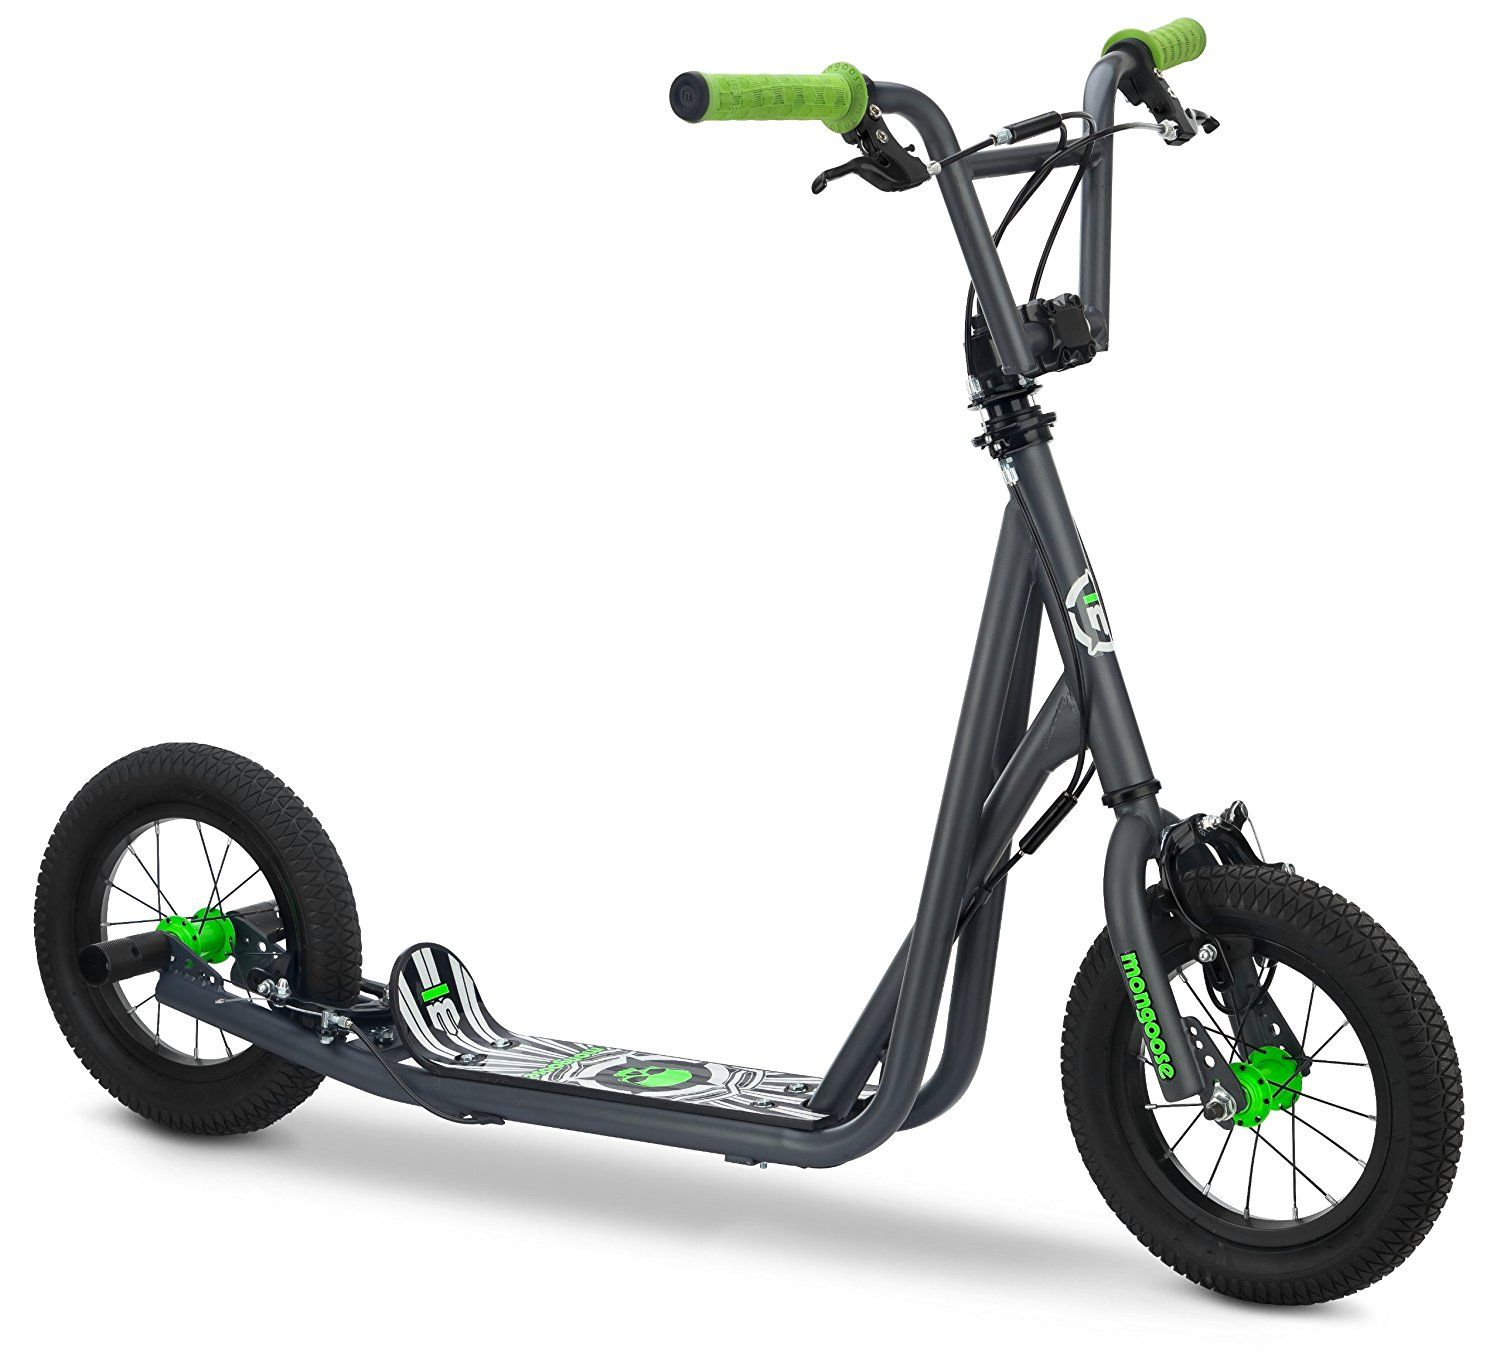 scooter electric scooter scooty scooters for sale scooters for kids